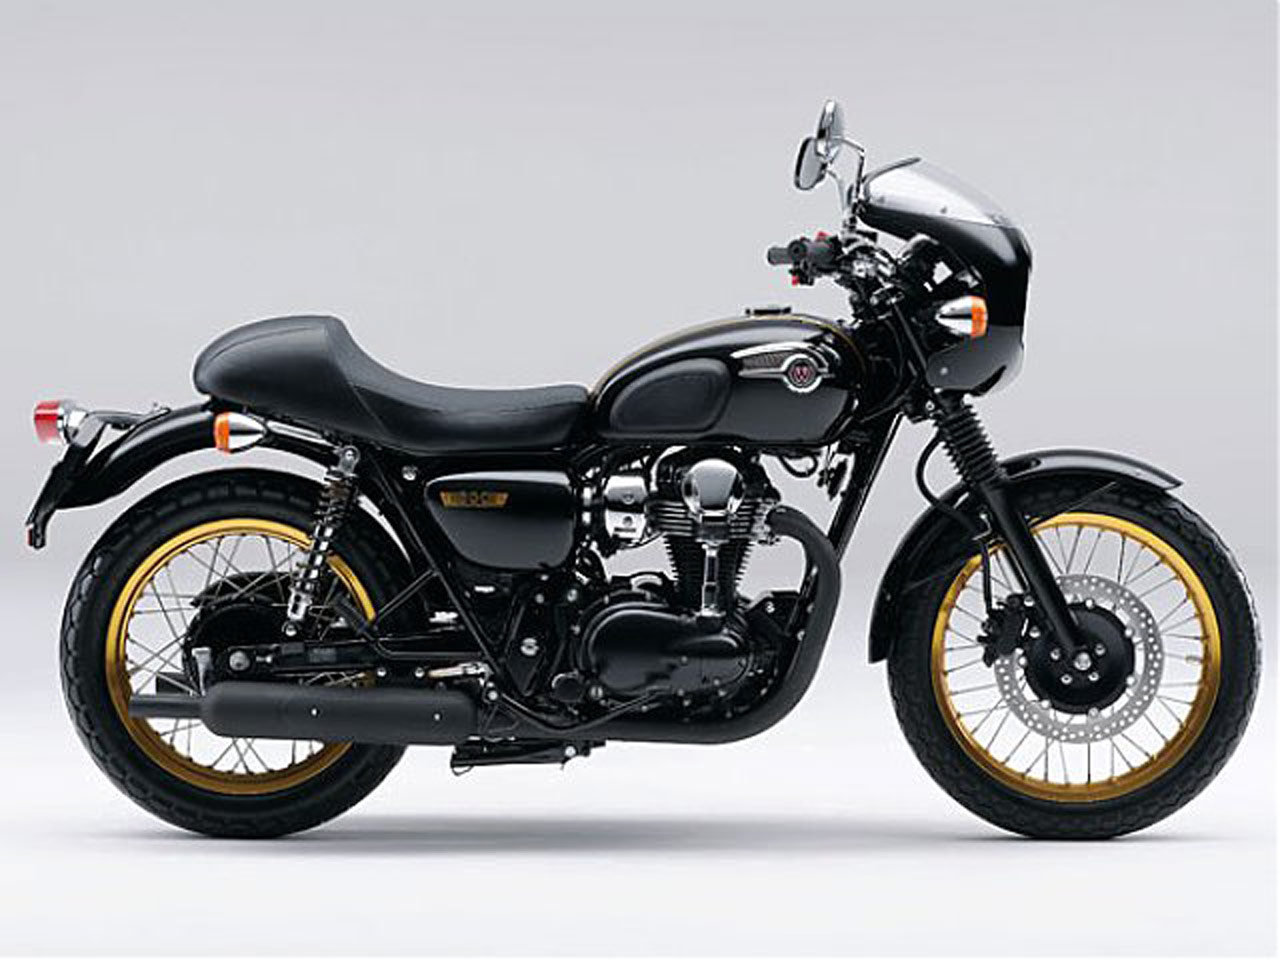 Kawasaki W800 Cafe Style images #86140